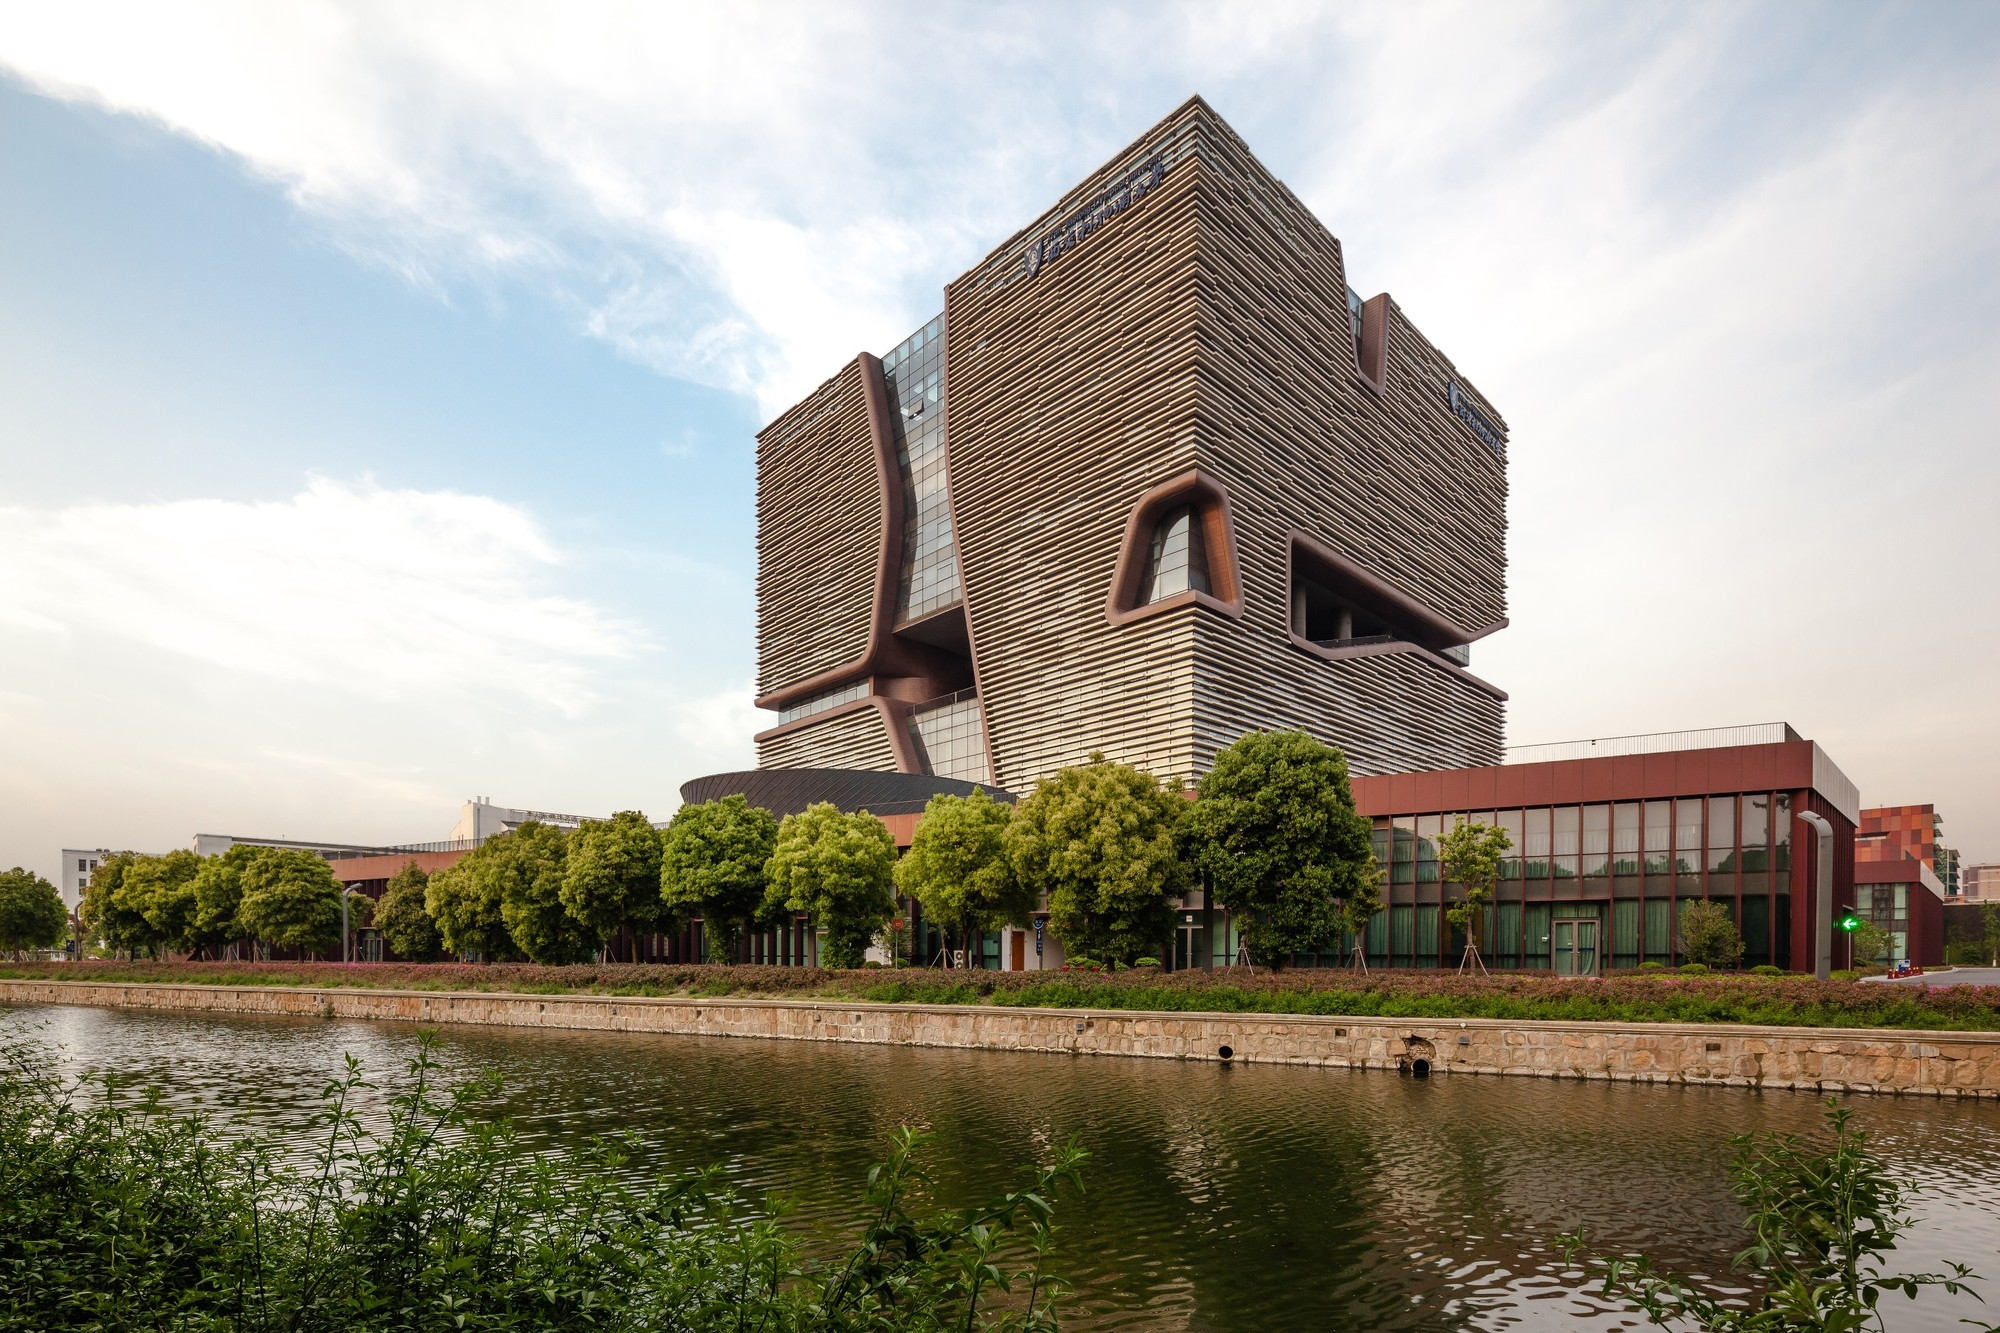 Aedas Announces Demerger Into Two Separate Companies, Xi'an Jiaotong-Liverpool University Administration Information Building. Image Courtesy of Aedas